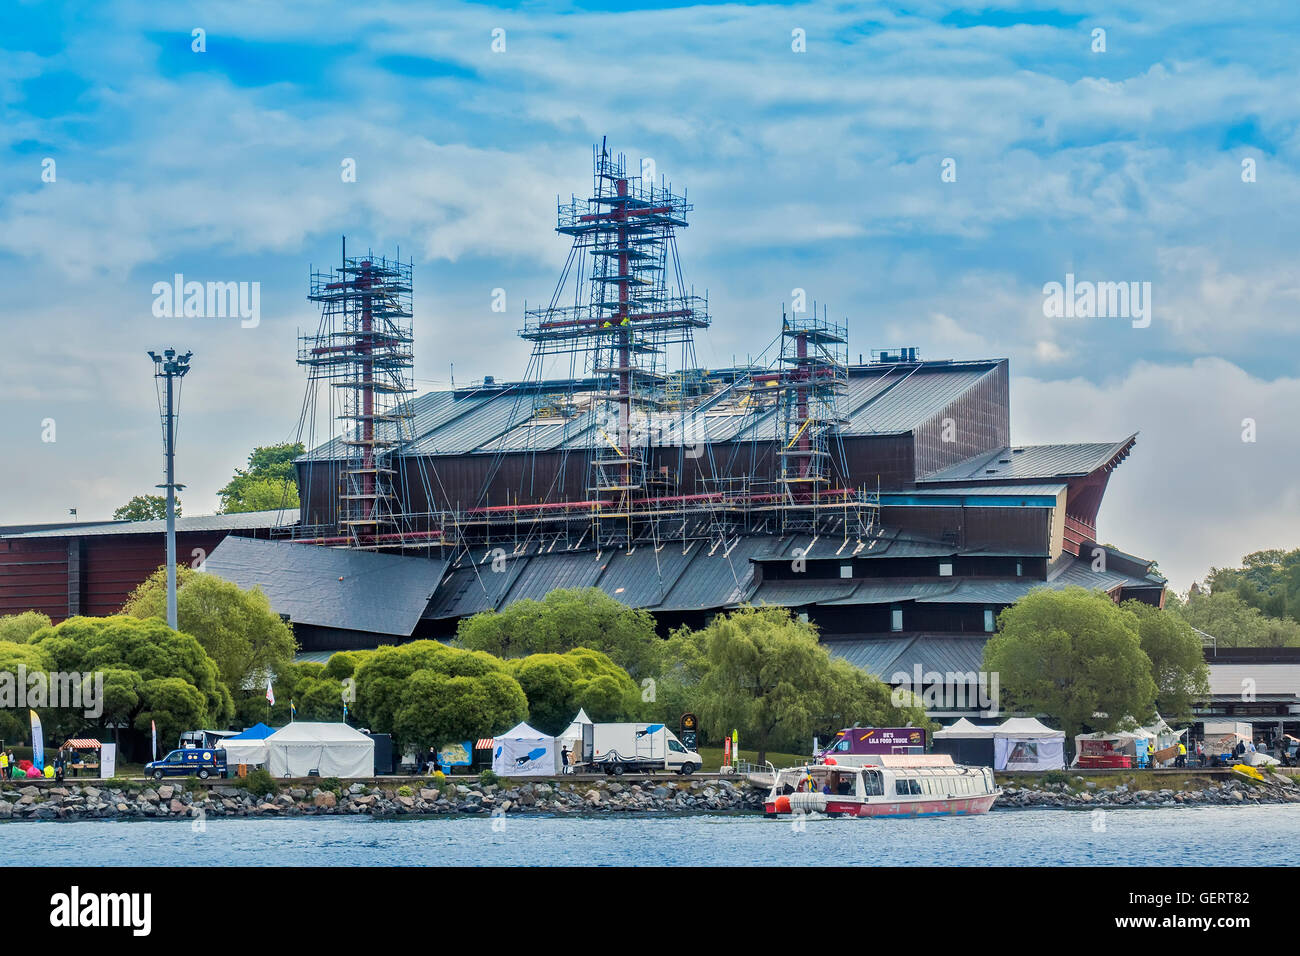 Masts Protruding From Building Vasa Museum Stockholm Sweden - Stock Image